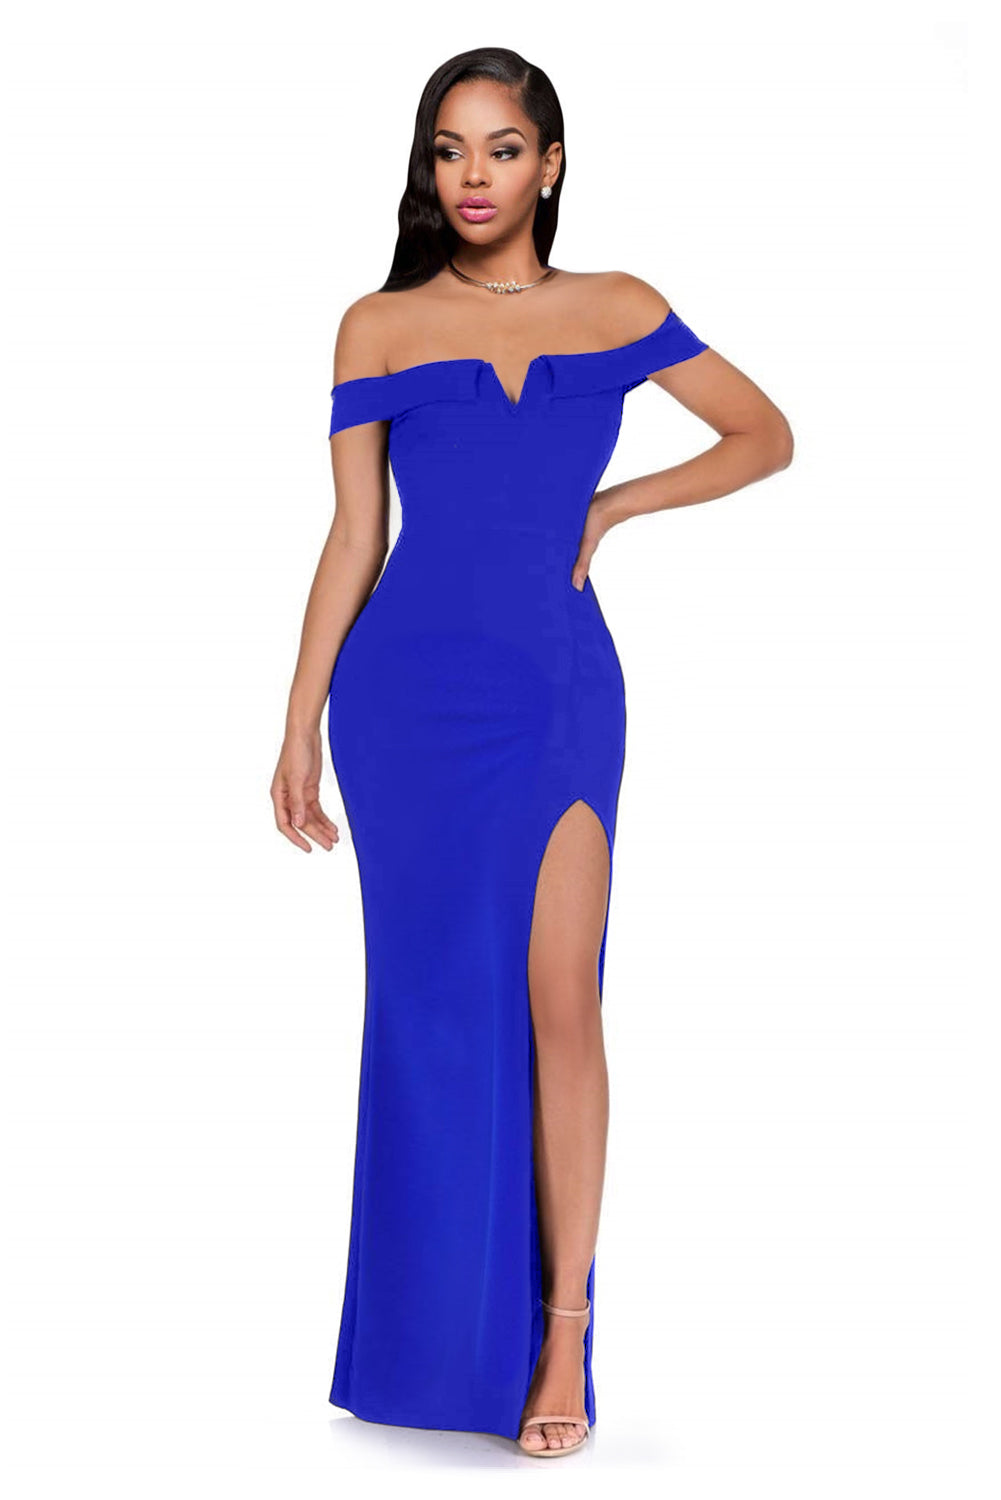 Blue Off The Shoulder Maxi Dress